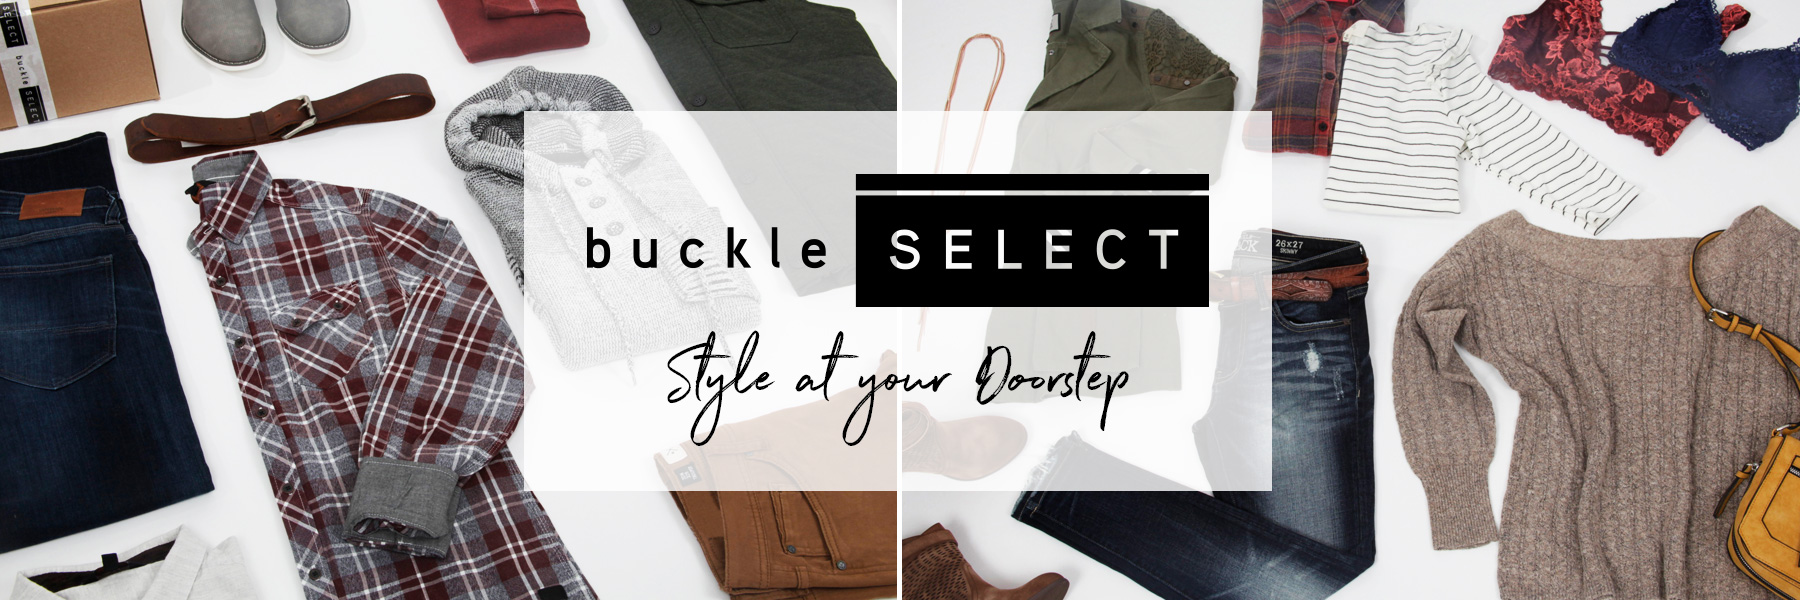 Buckle Select Pictures of Buckle Outfits Banner